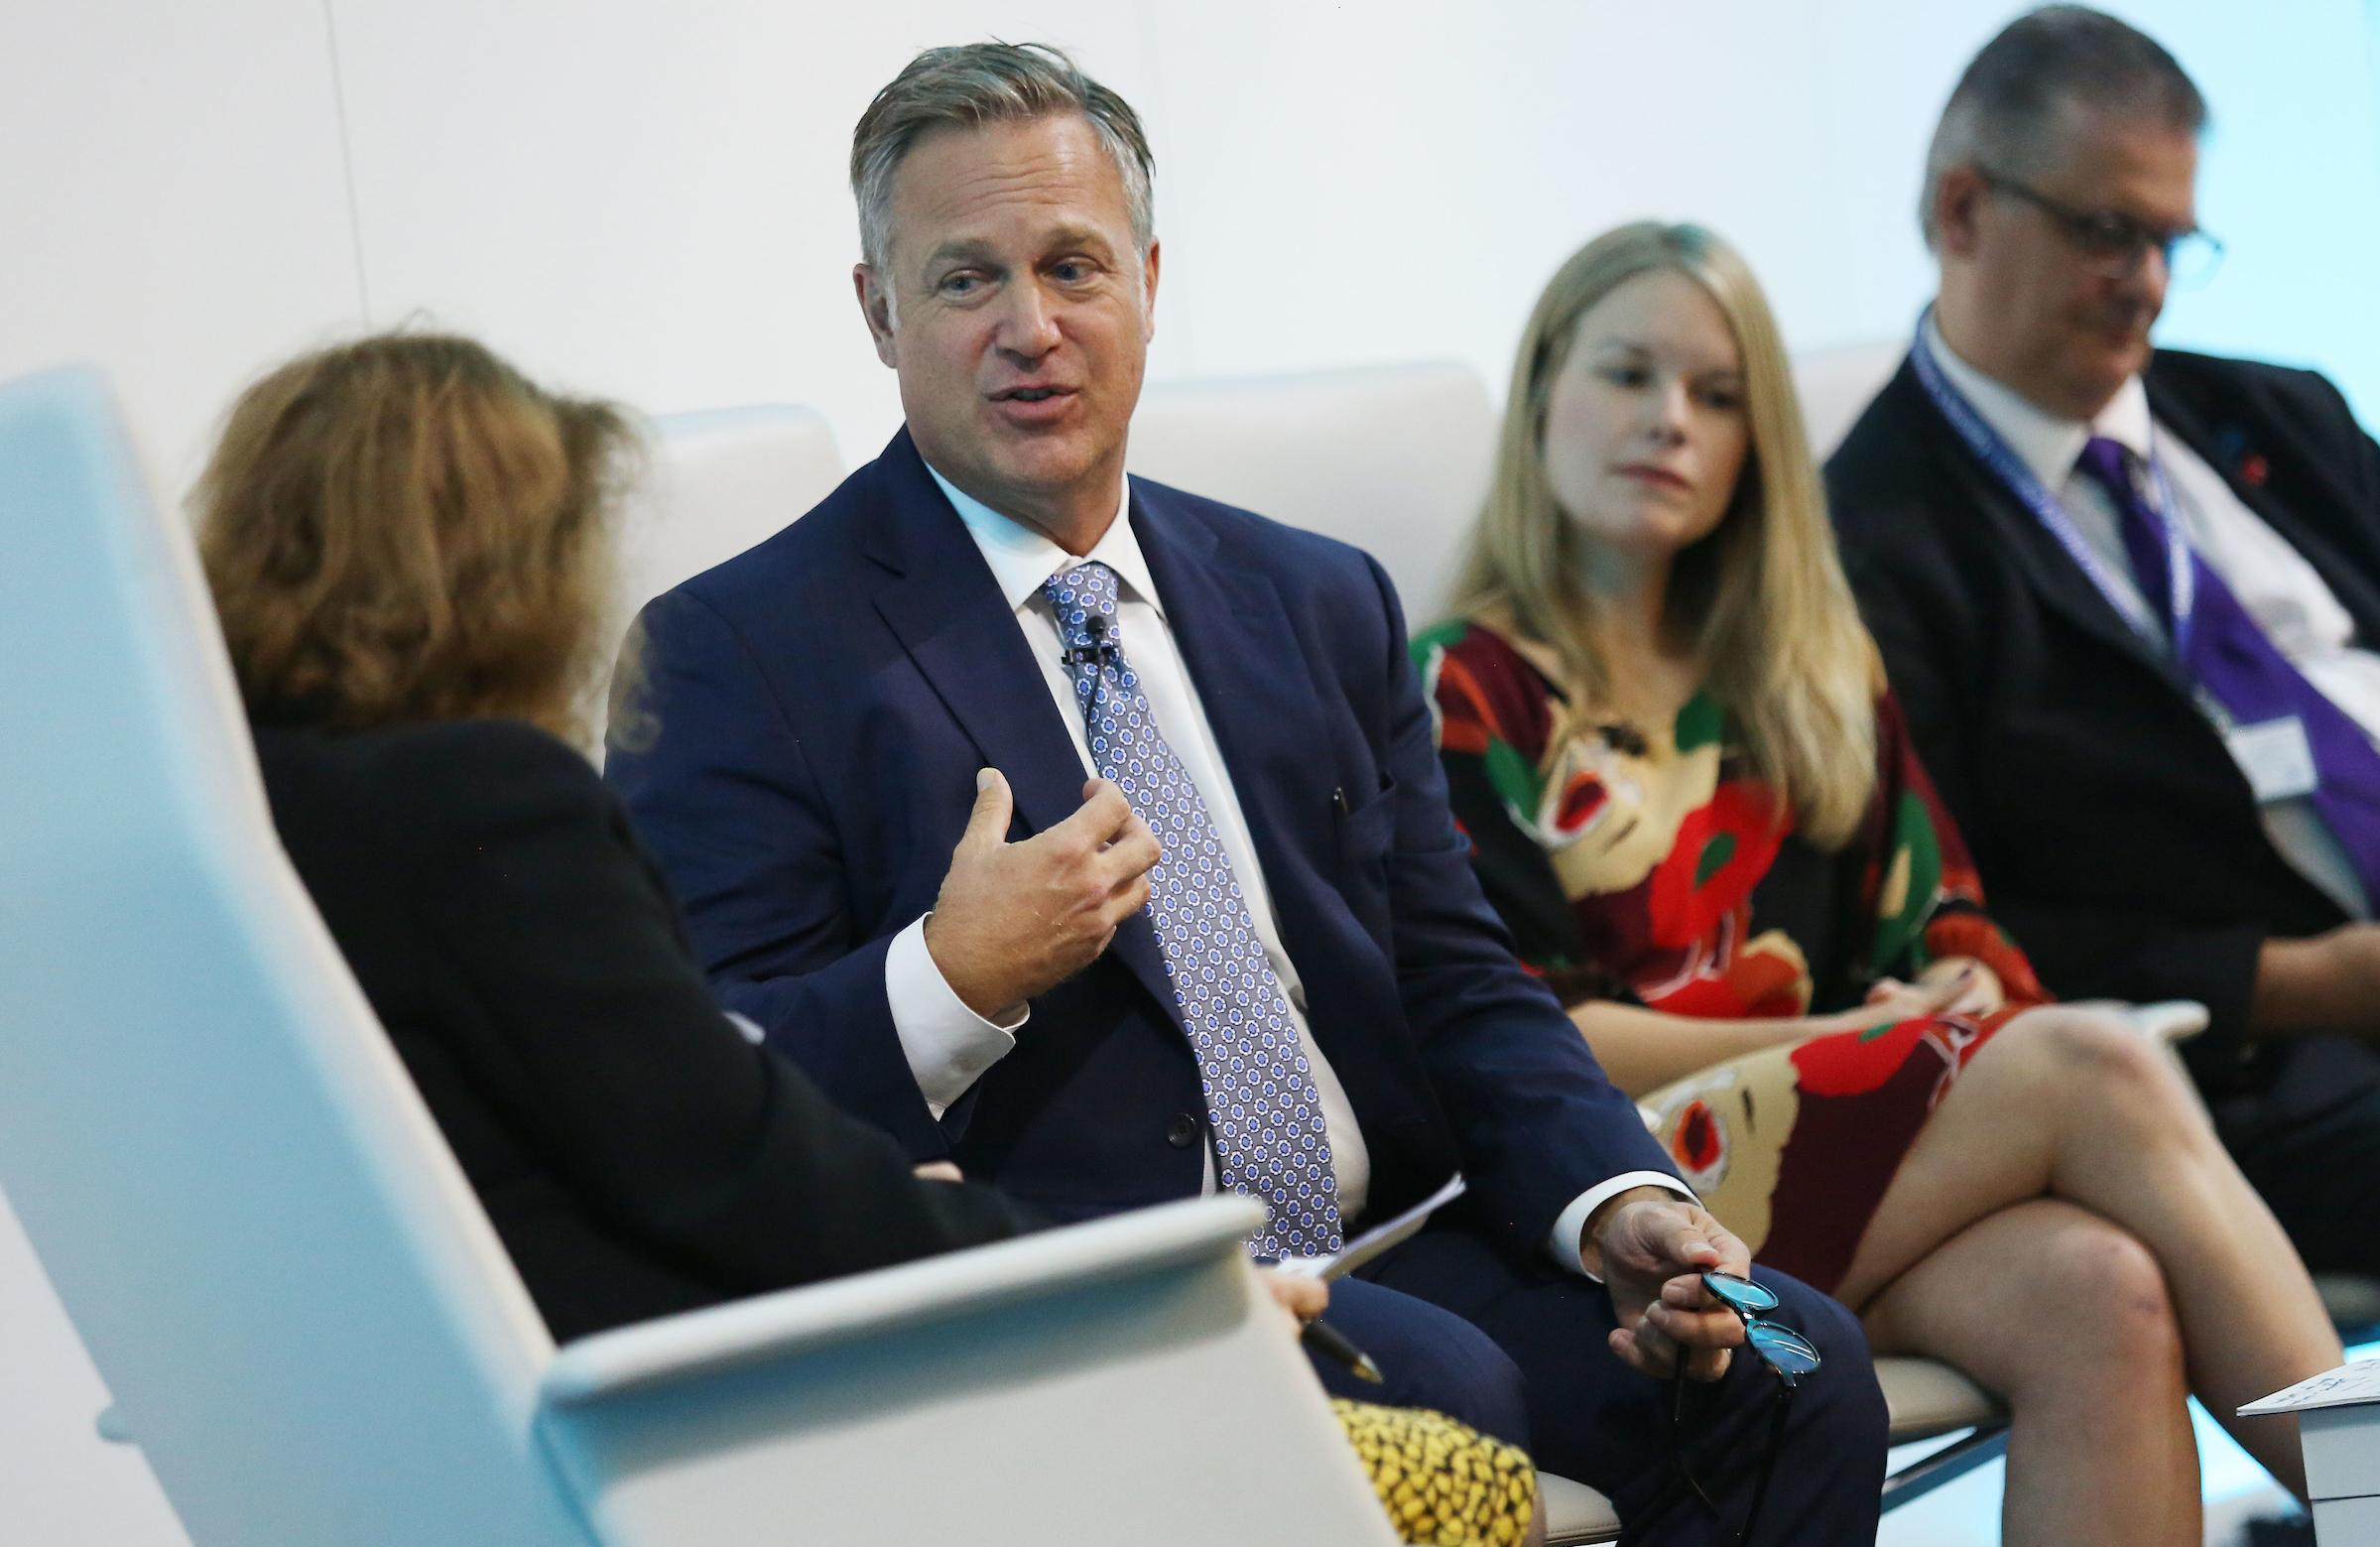 Home Instead CEO and President Jeff Huber at The Financial Times Dementia Summit 2019